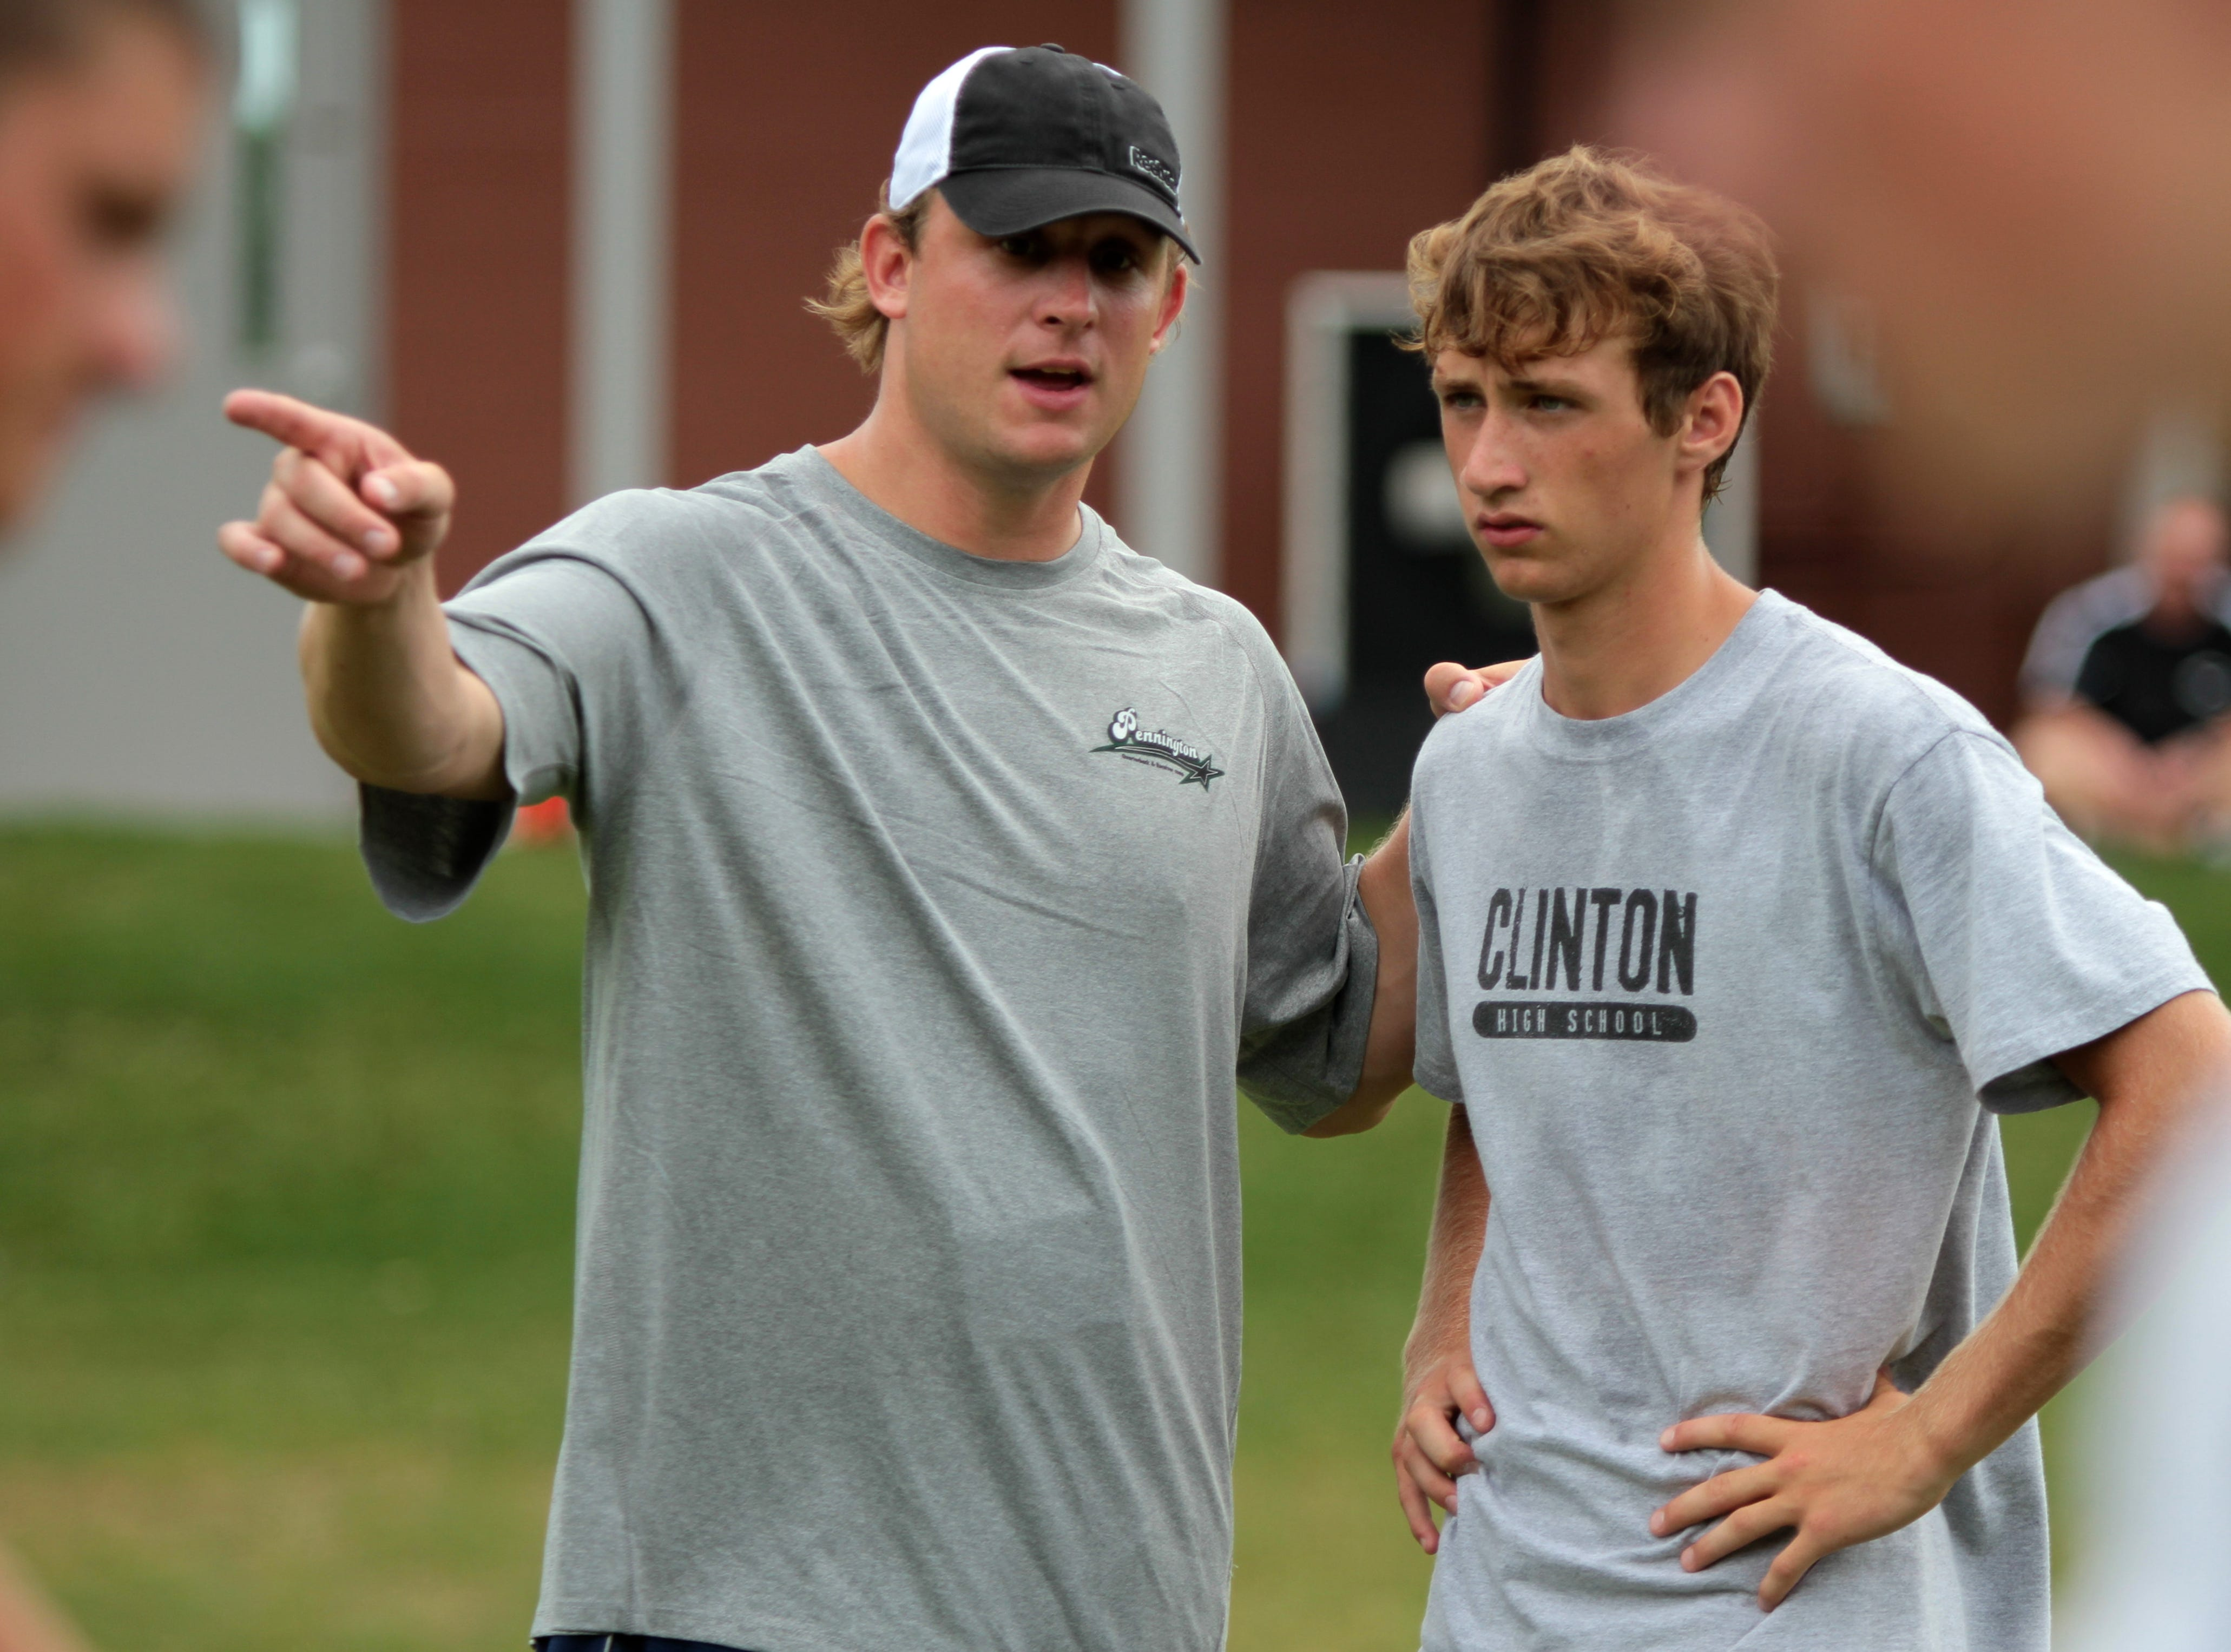 Chad Pennington, left, talks with Alex Willard, 16, of Clinton High School during the 12th annual Chad Pennington Football Quarterbacks and Receivers Camp at Webb School on Tuesday, July 12, 2011.